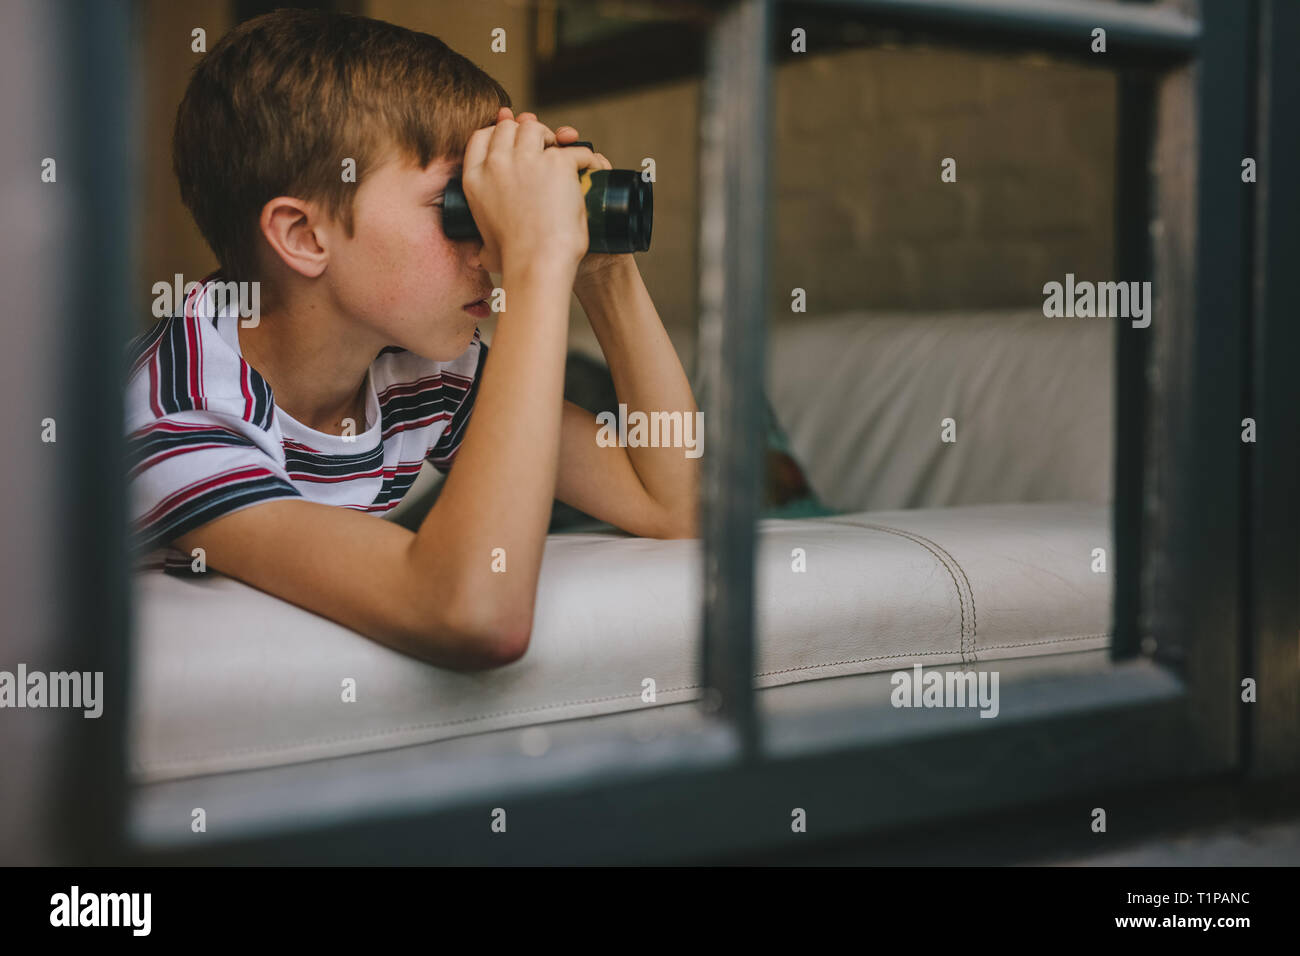 Curious boy looking out the window with binocular. Small boy on sofa looking outside window using binoculars. - Stock Image